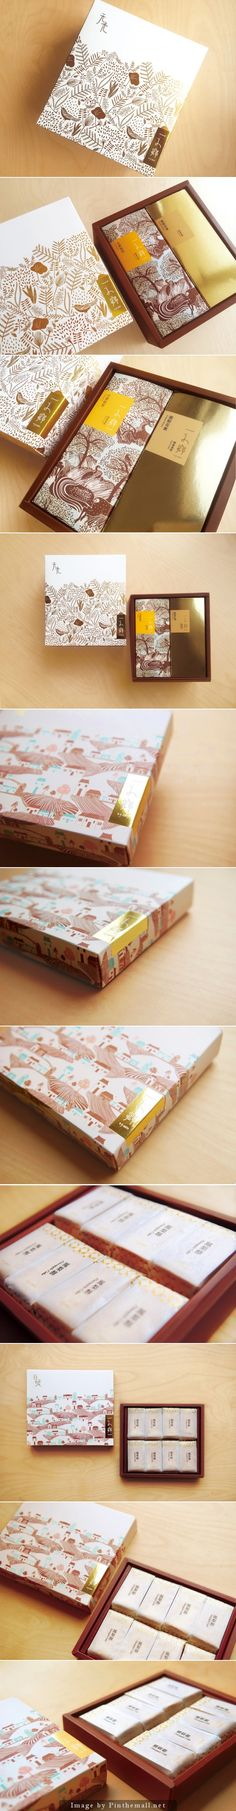 Light of Day / Warmth of Sunshine beautiful cakes #packaging PD